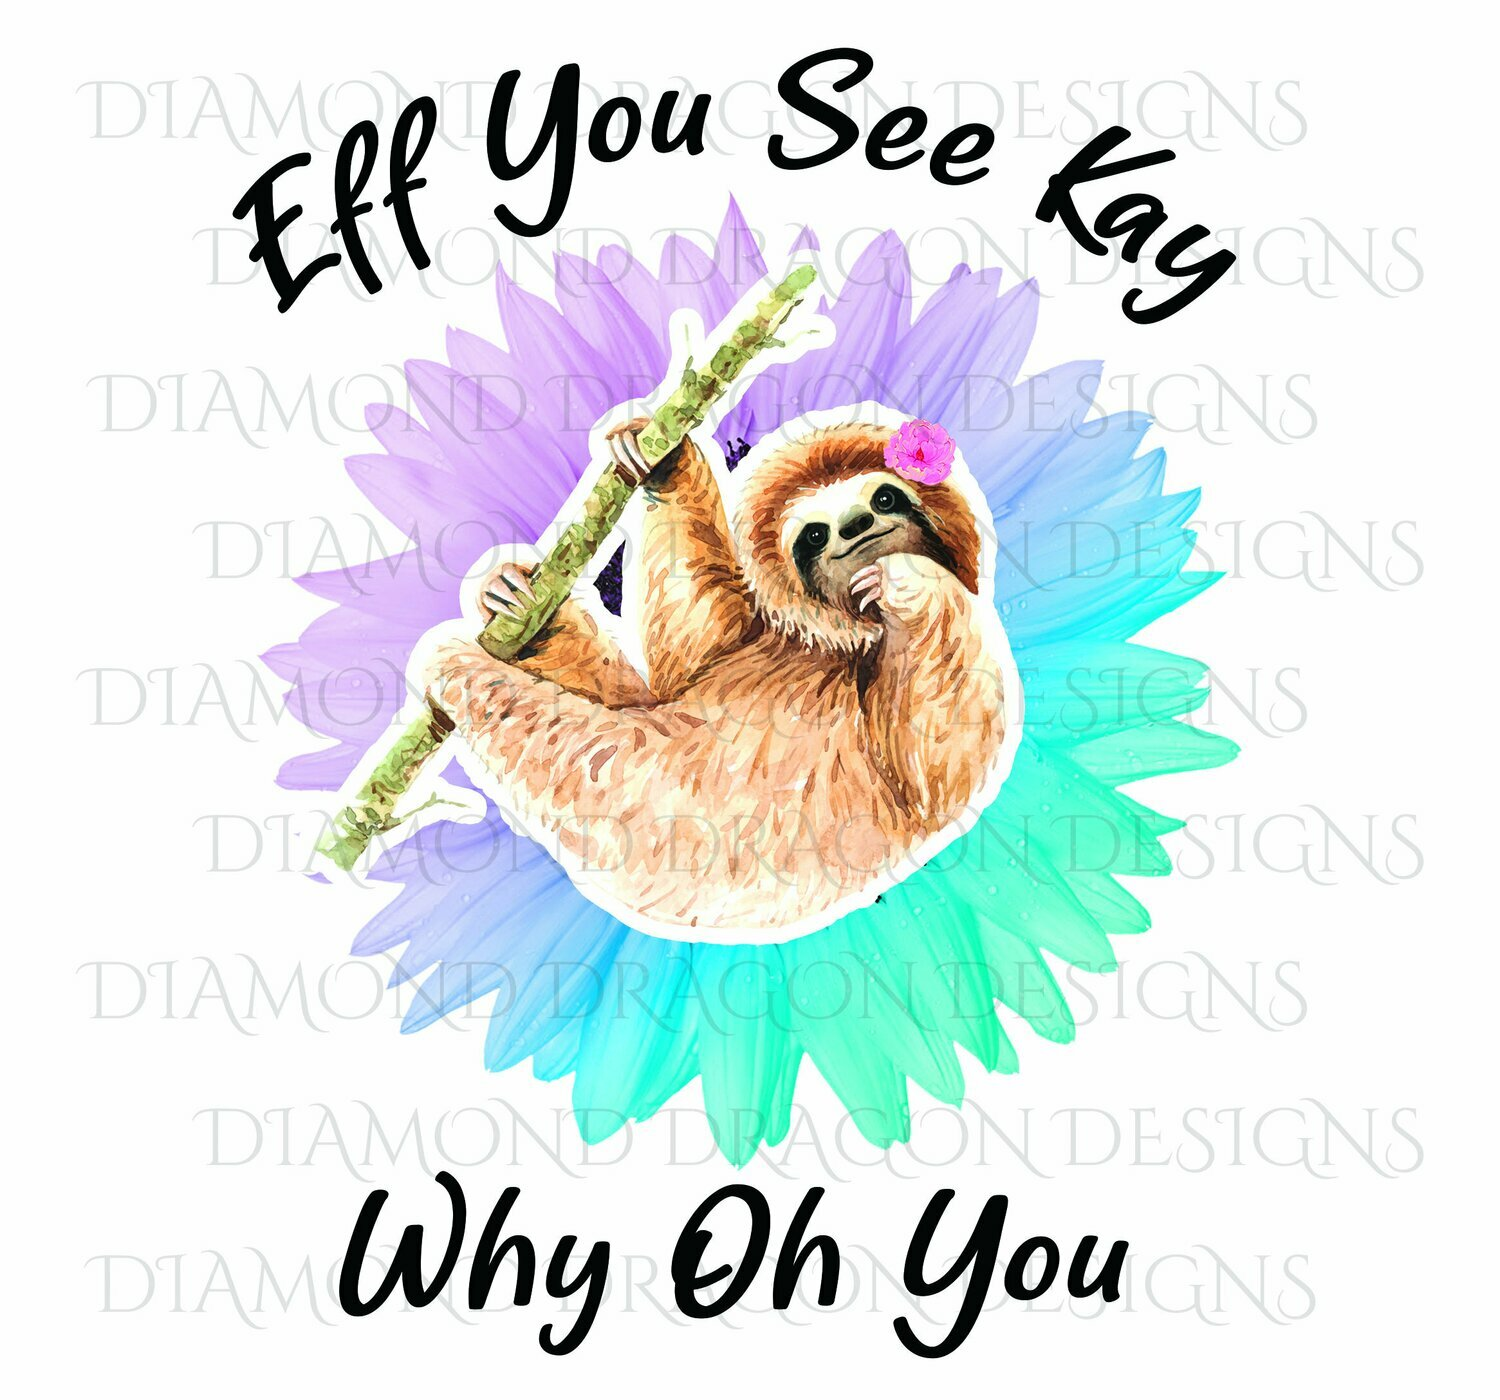 Animals - Cute Sloth, Sloth with Flower, Eff You See Kay, Why Oh You, Sunflower Sloth, Waterslide